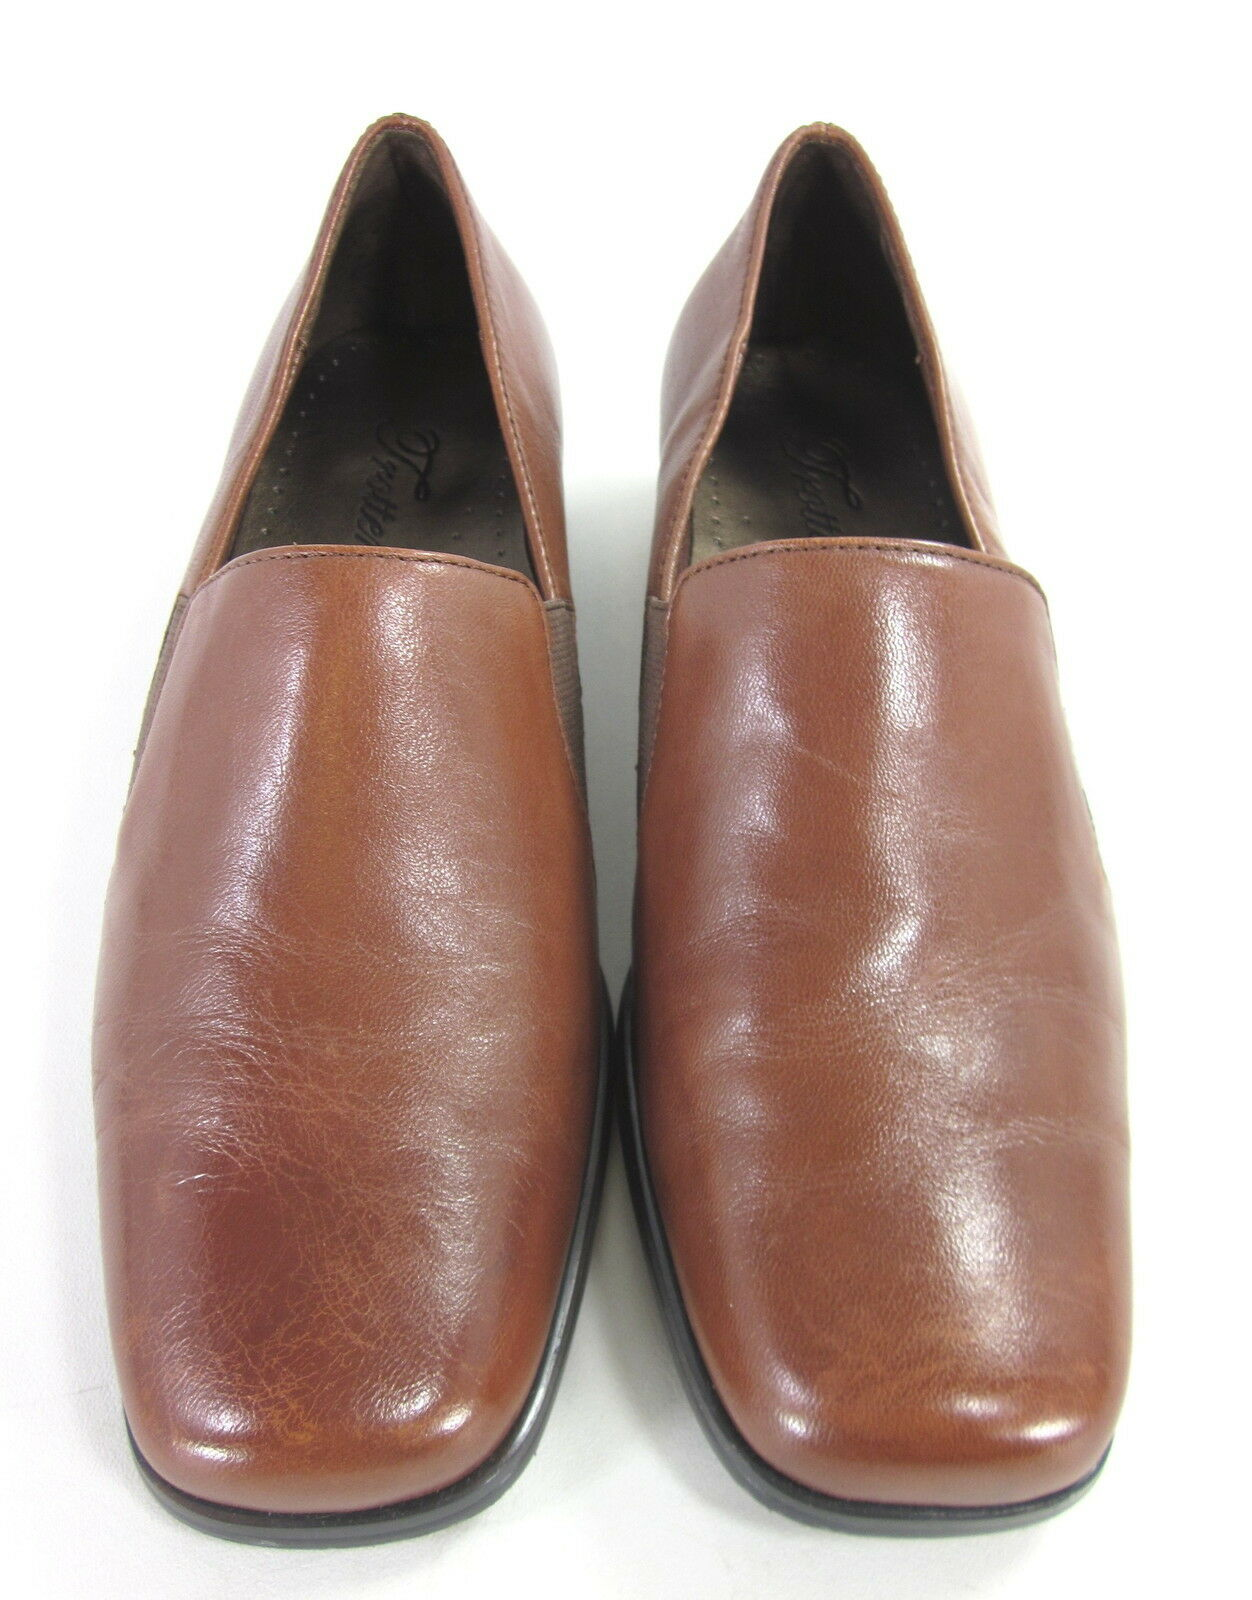 TredTERS WOMEN'S  ASH  CASUAL LOAFERS LOAFERS LOAFERS COGNAC BURNISHED LEATHER US SIZE 6.5 WIDE 55a329